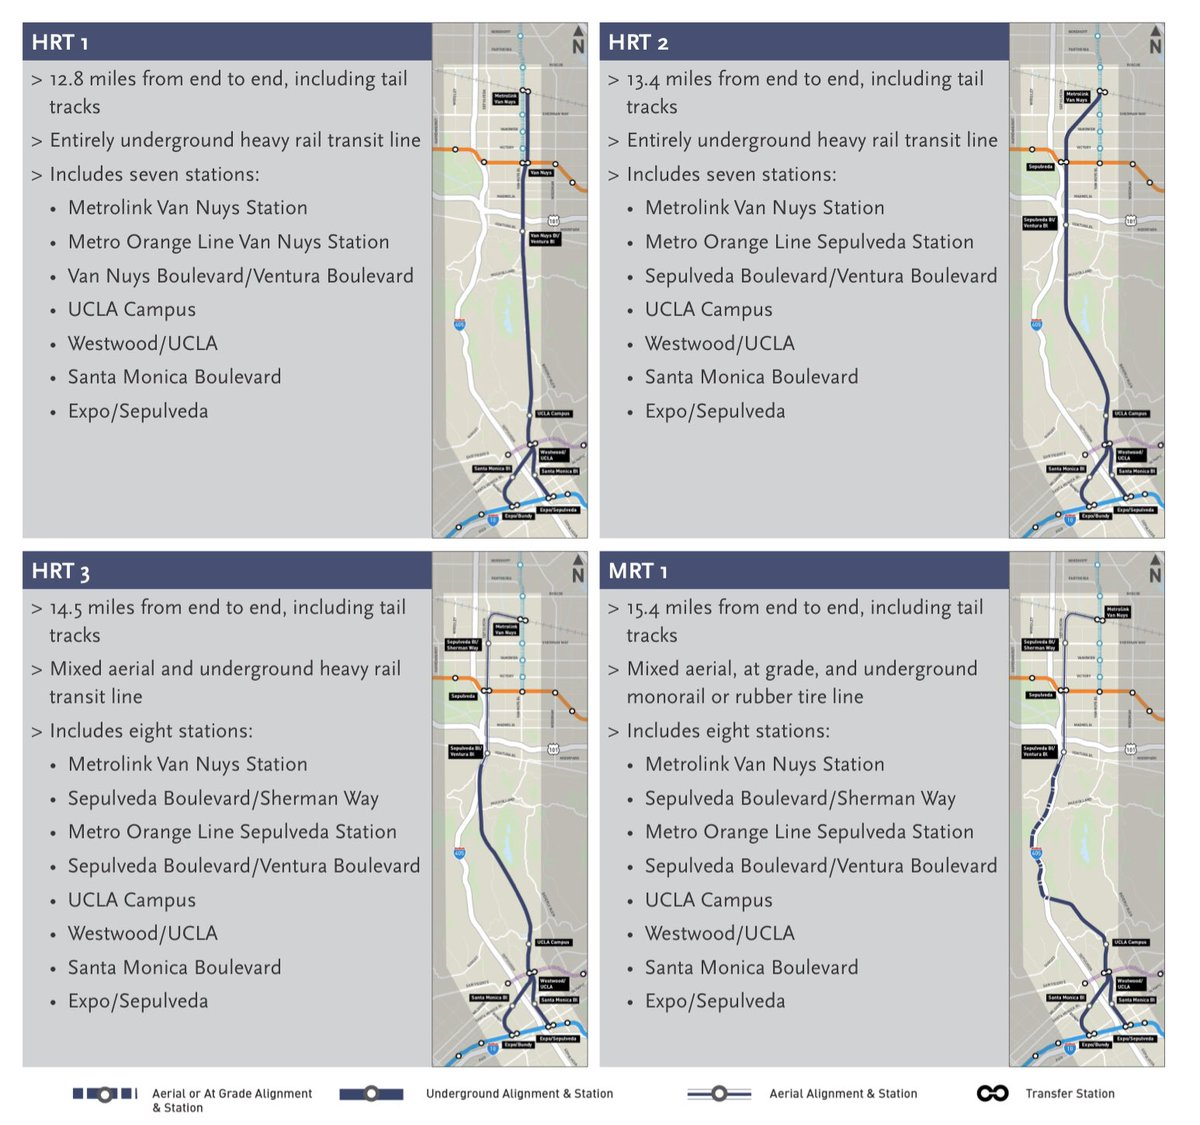 11/20/19 Metro Planning Committee: Sepulveda Transit Corridor feasibility study is done. Selection of alternatives for environmental clearance will be in June/July 2020. Report says a single-bore tunnel can overcome ventilation and cross-passage issues. metro.legistar.com/LegislationDet…